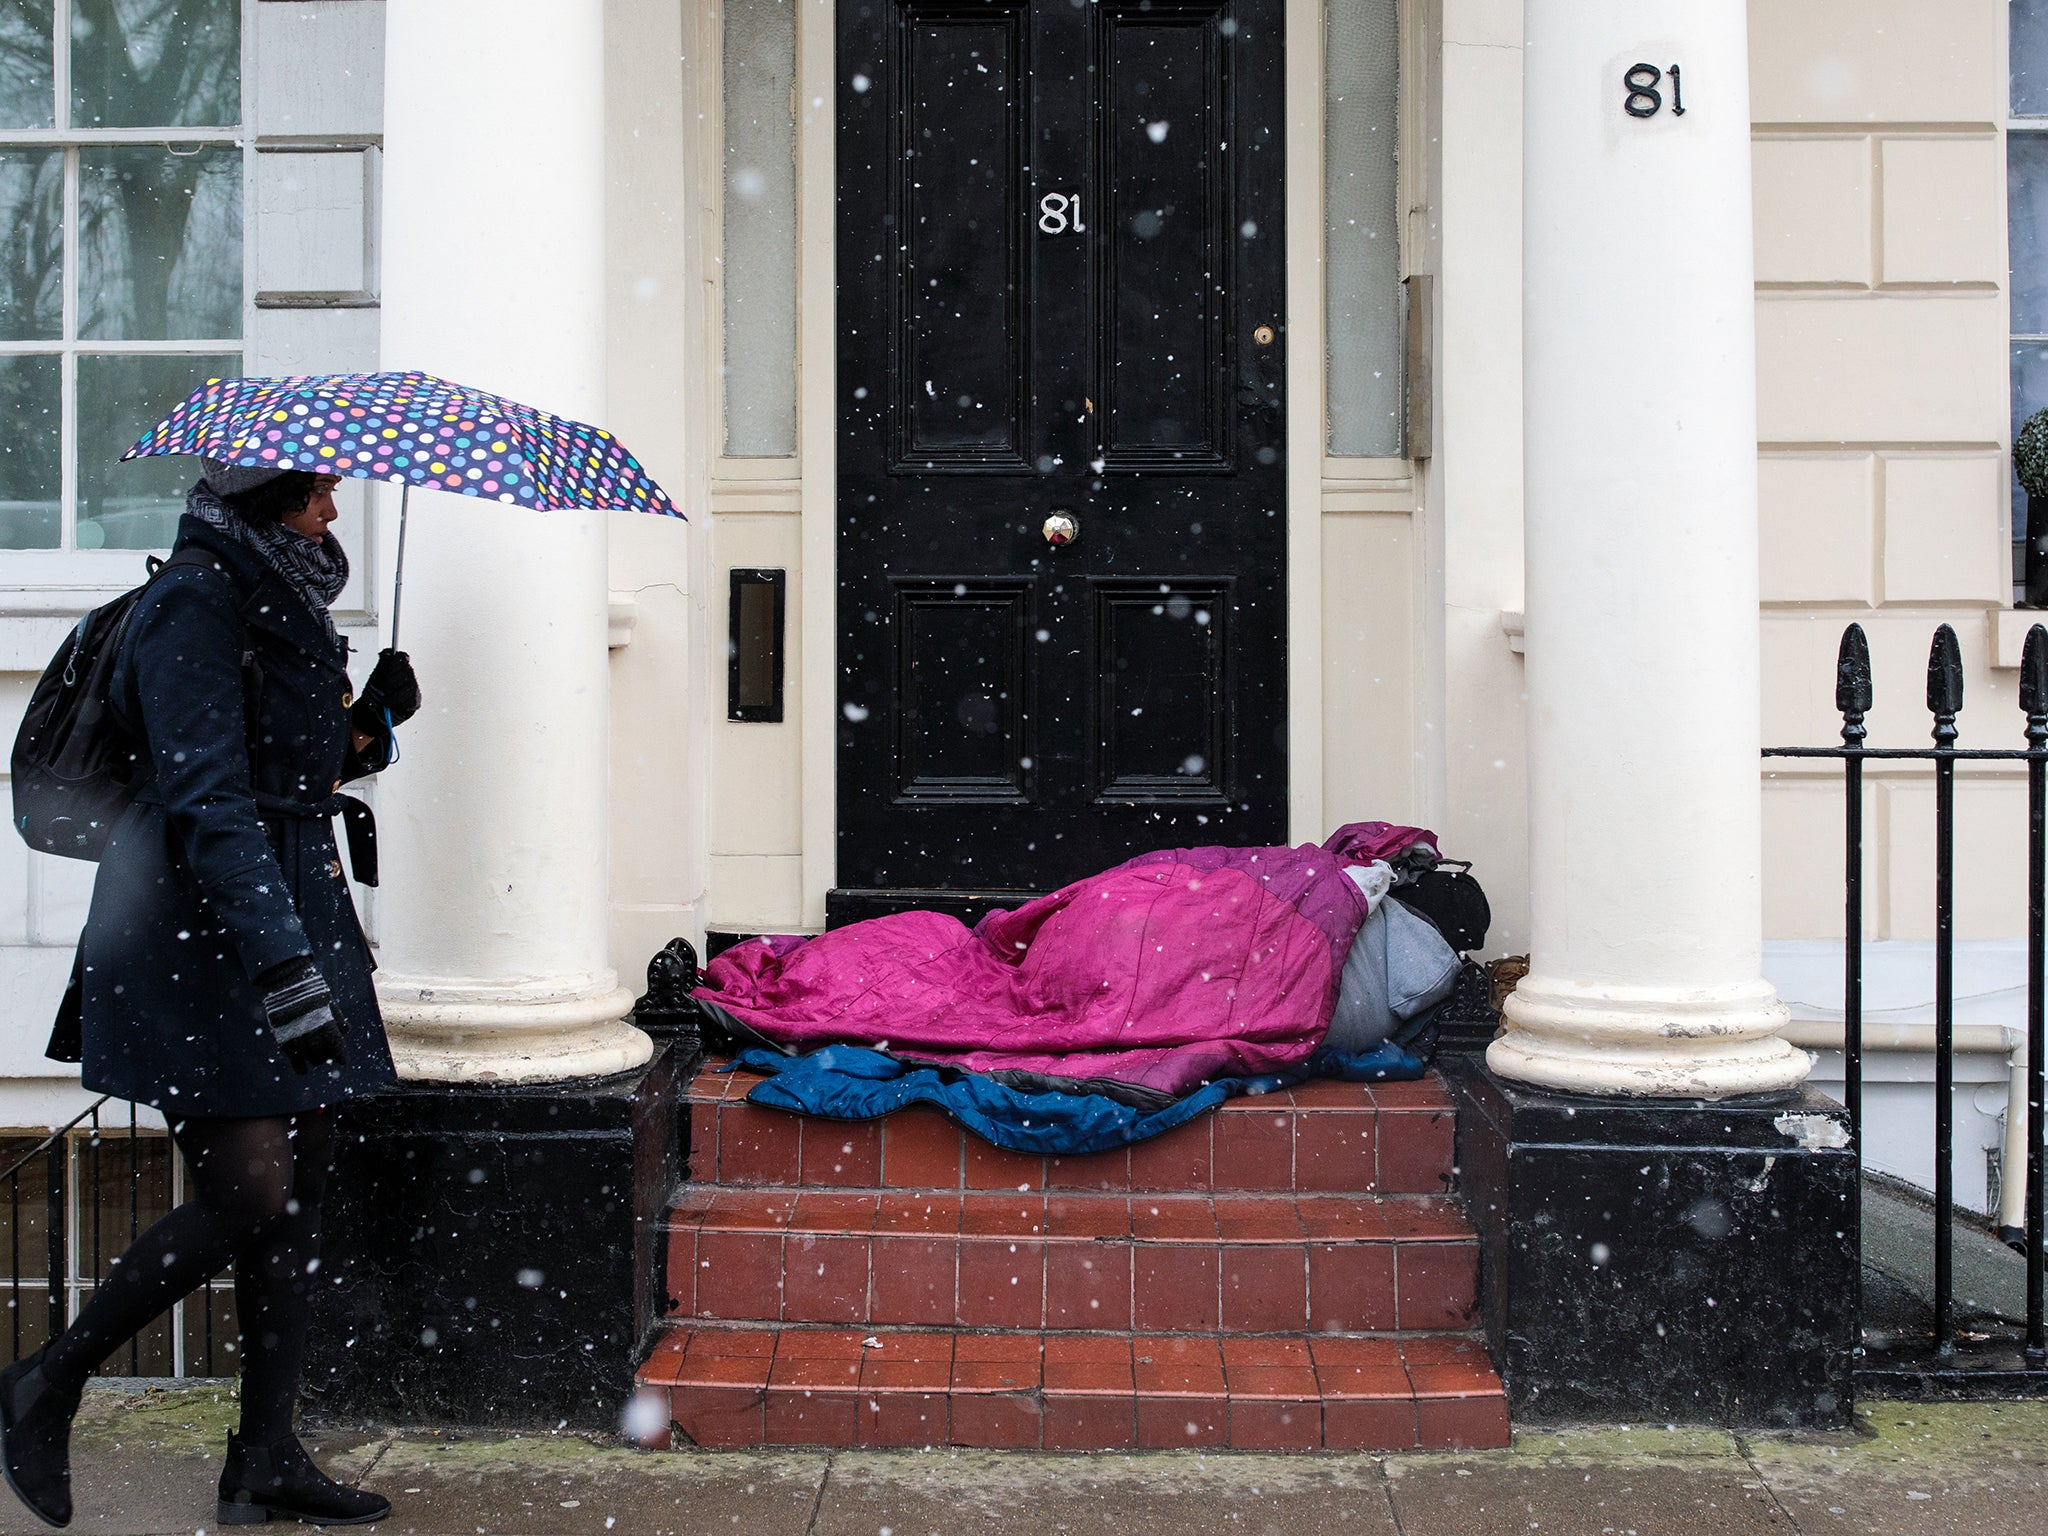 Only 20% of landlords would consider letting property to young people who have been homeless